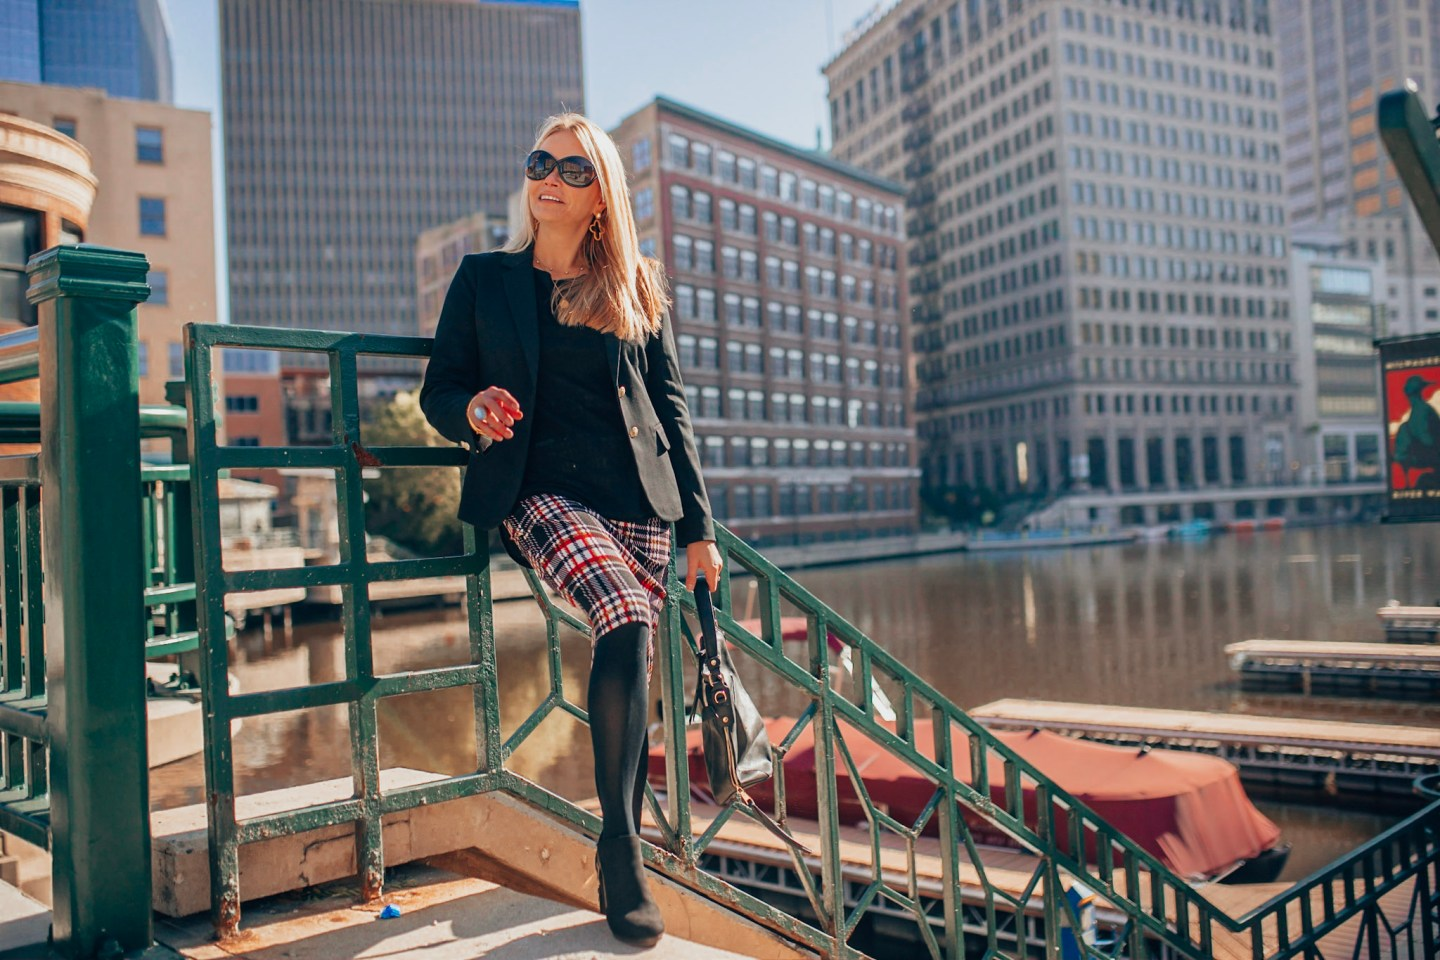 Holiday Plaid Picks-Plaid pencil skirt with J.Crew black blazer on style & travel blogger Gloss and Harbour